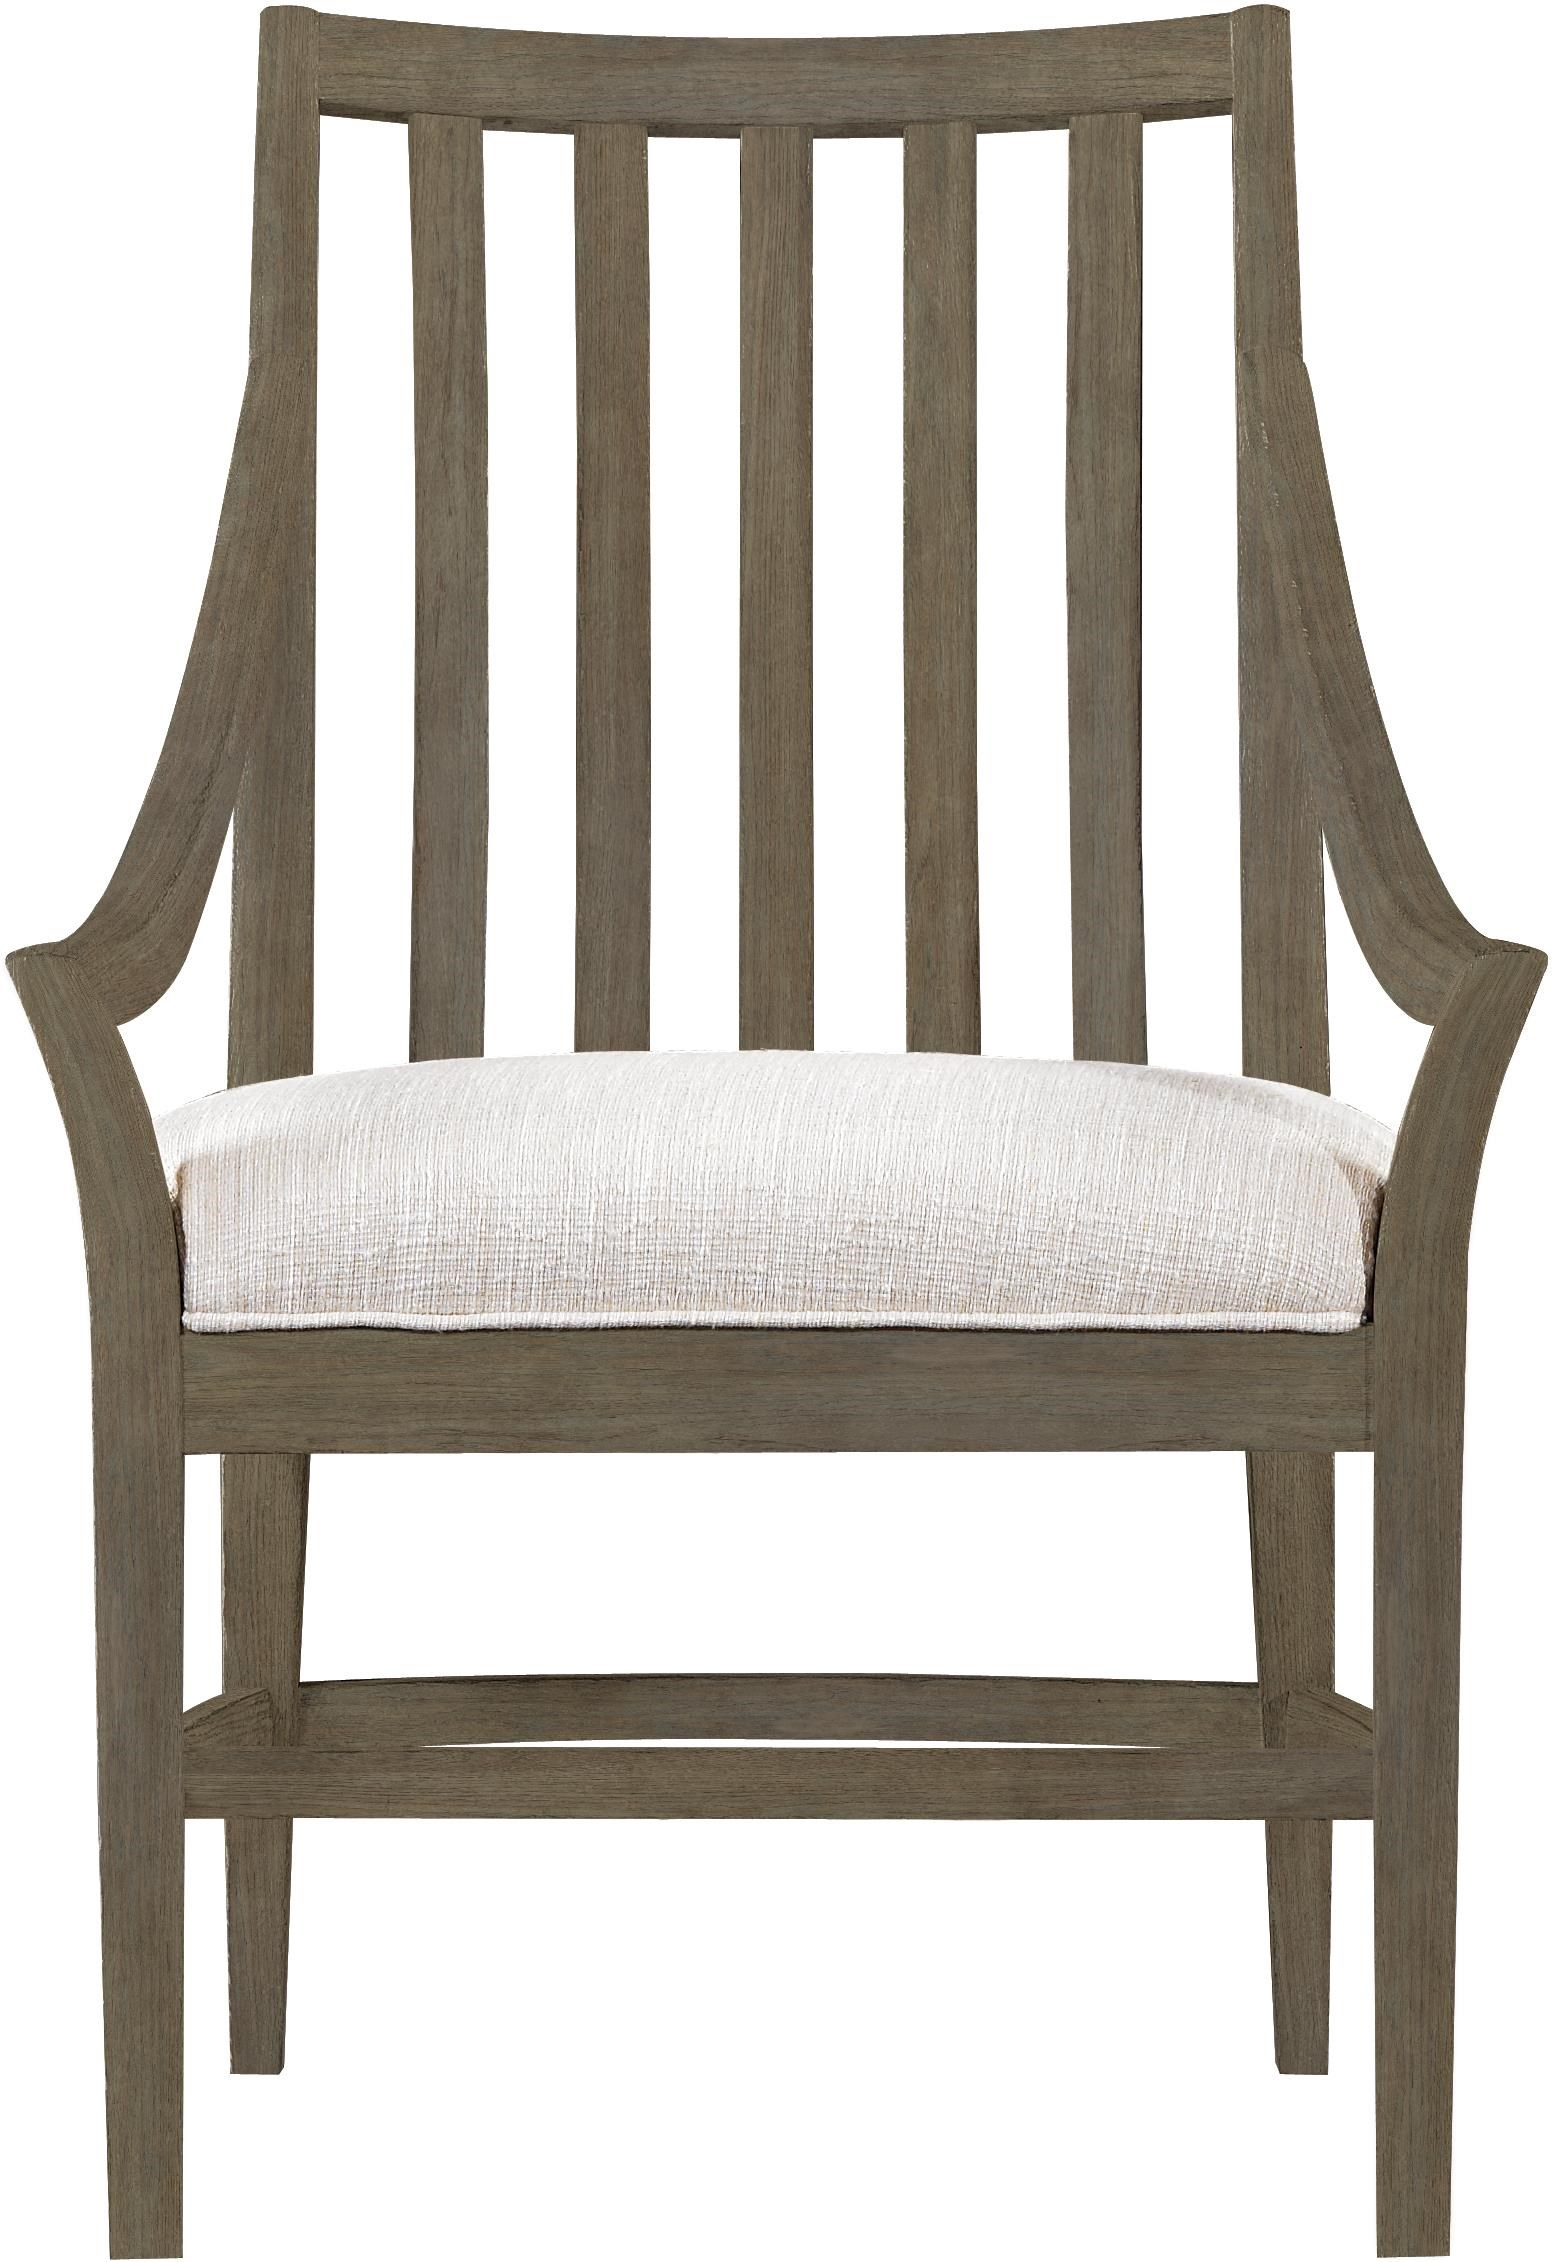 thebay furniture. Fine Furniture Stanley Furniture Coastal Living ResortBy The Bay Dining Chair  Inside Thebay